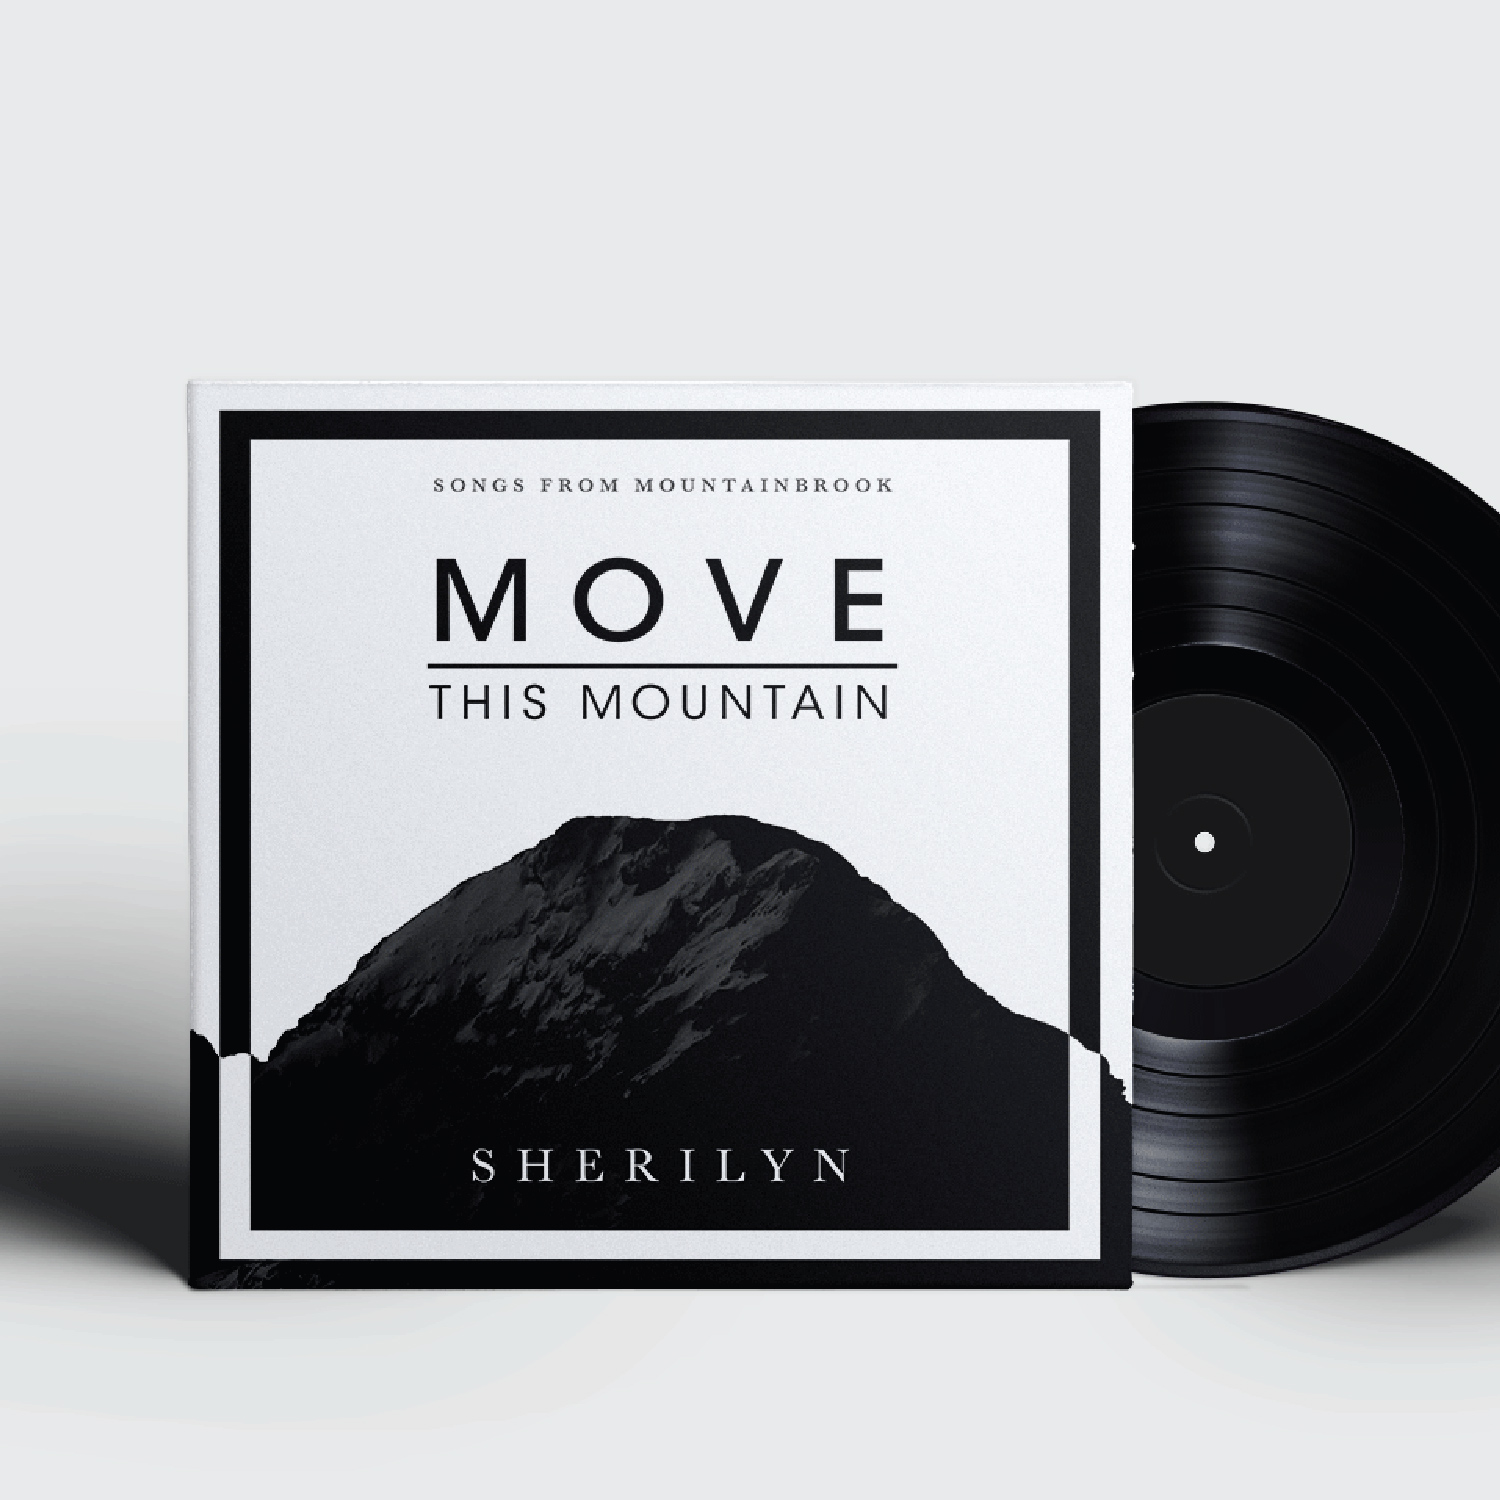 WORK_MoveThisMountain-01.jpg